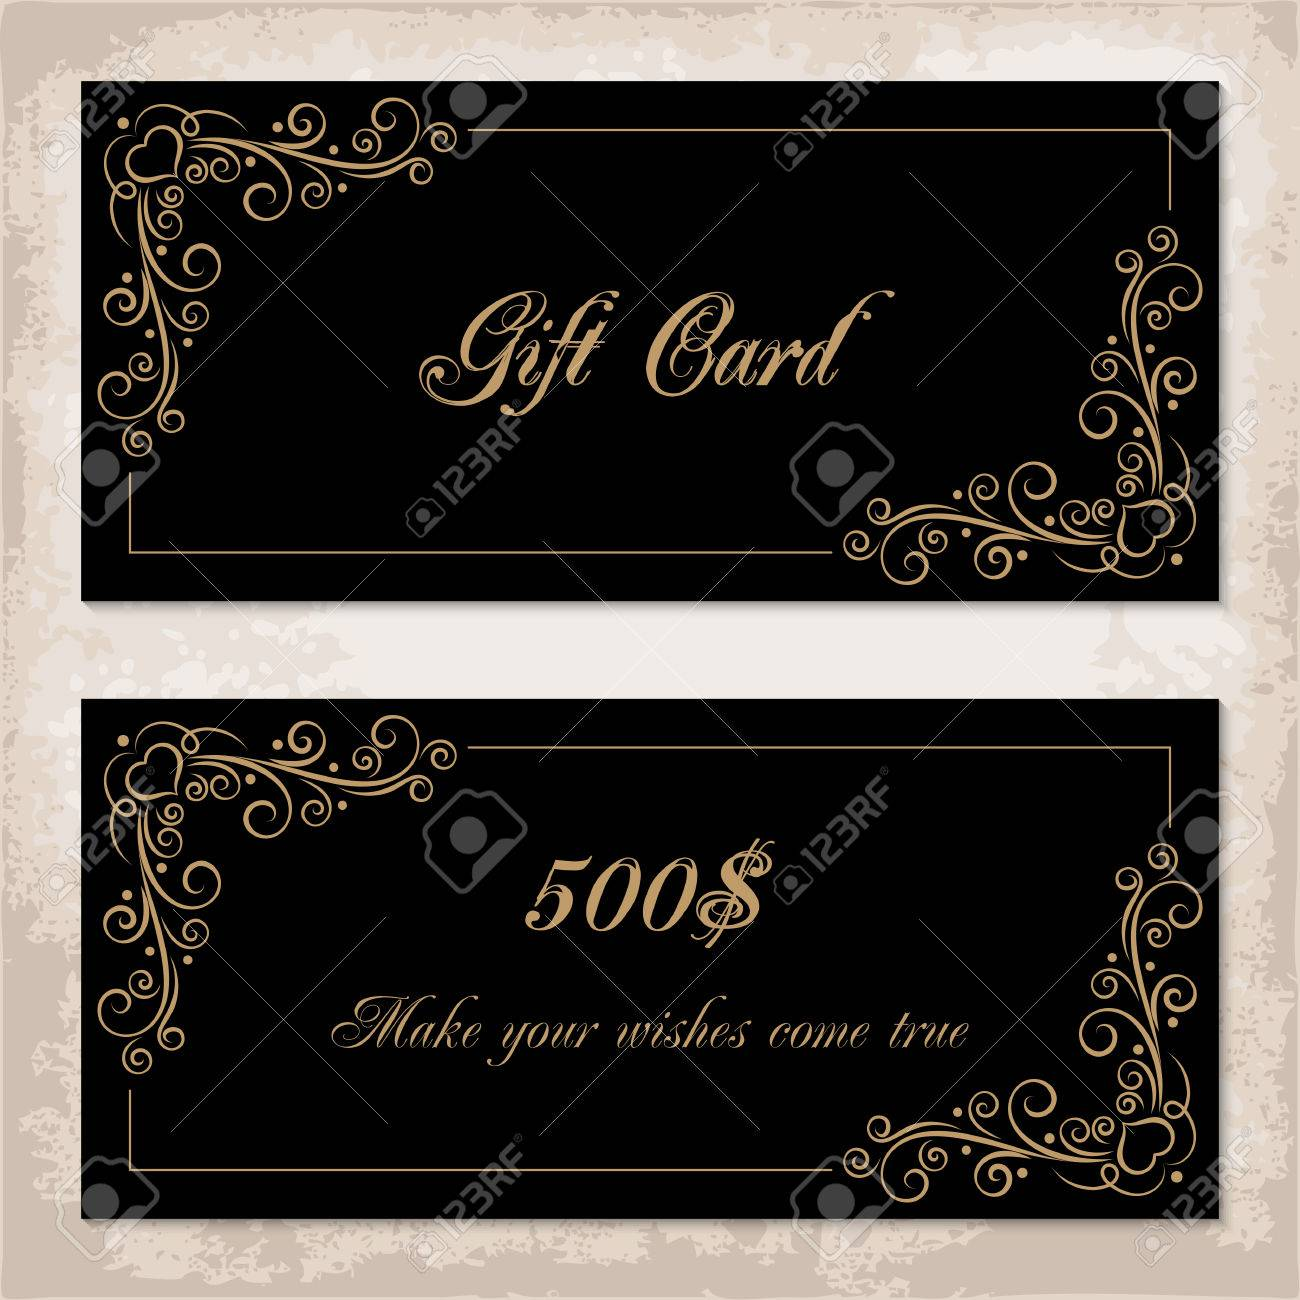 Gift certificate templates mac northurthwall gift certificate templates mac alramifo Image collections